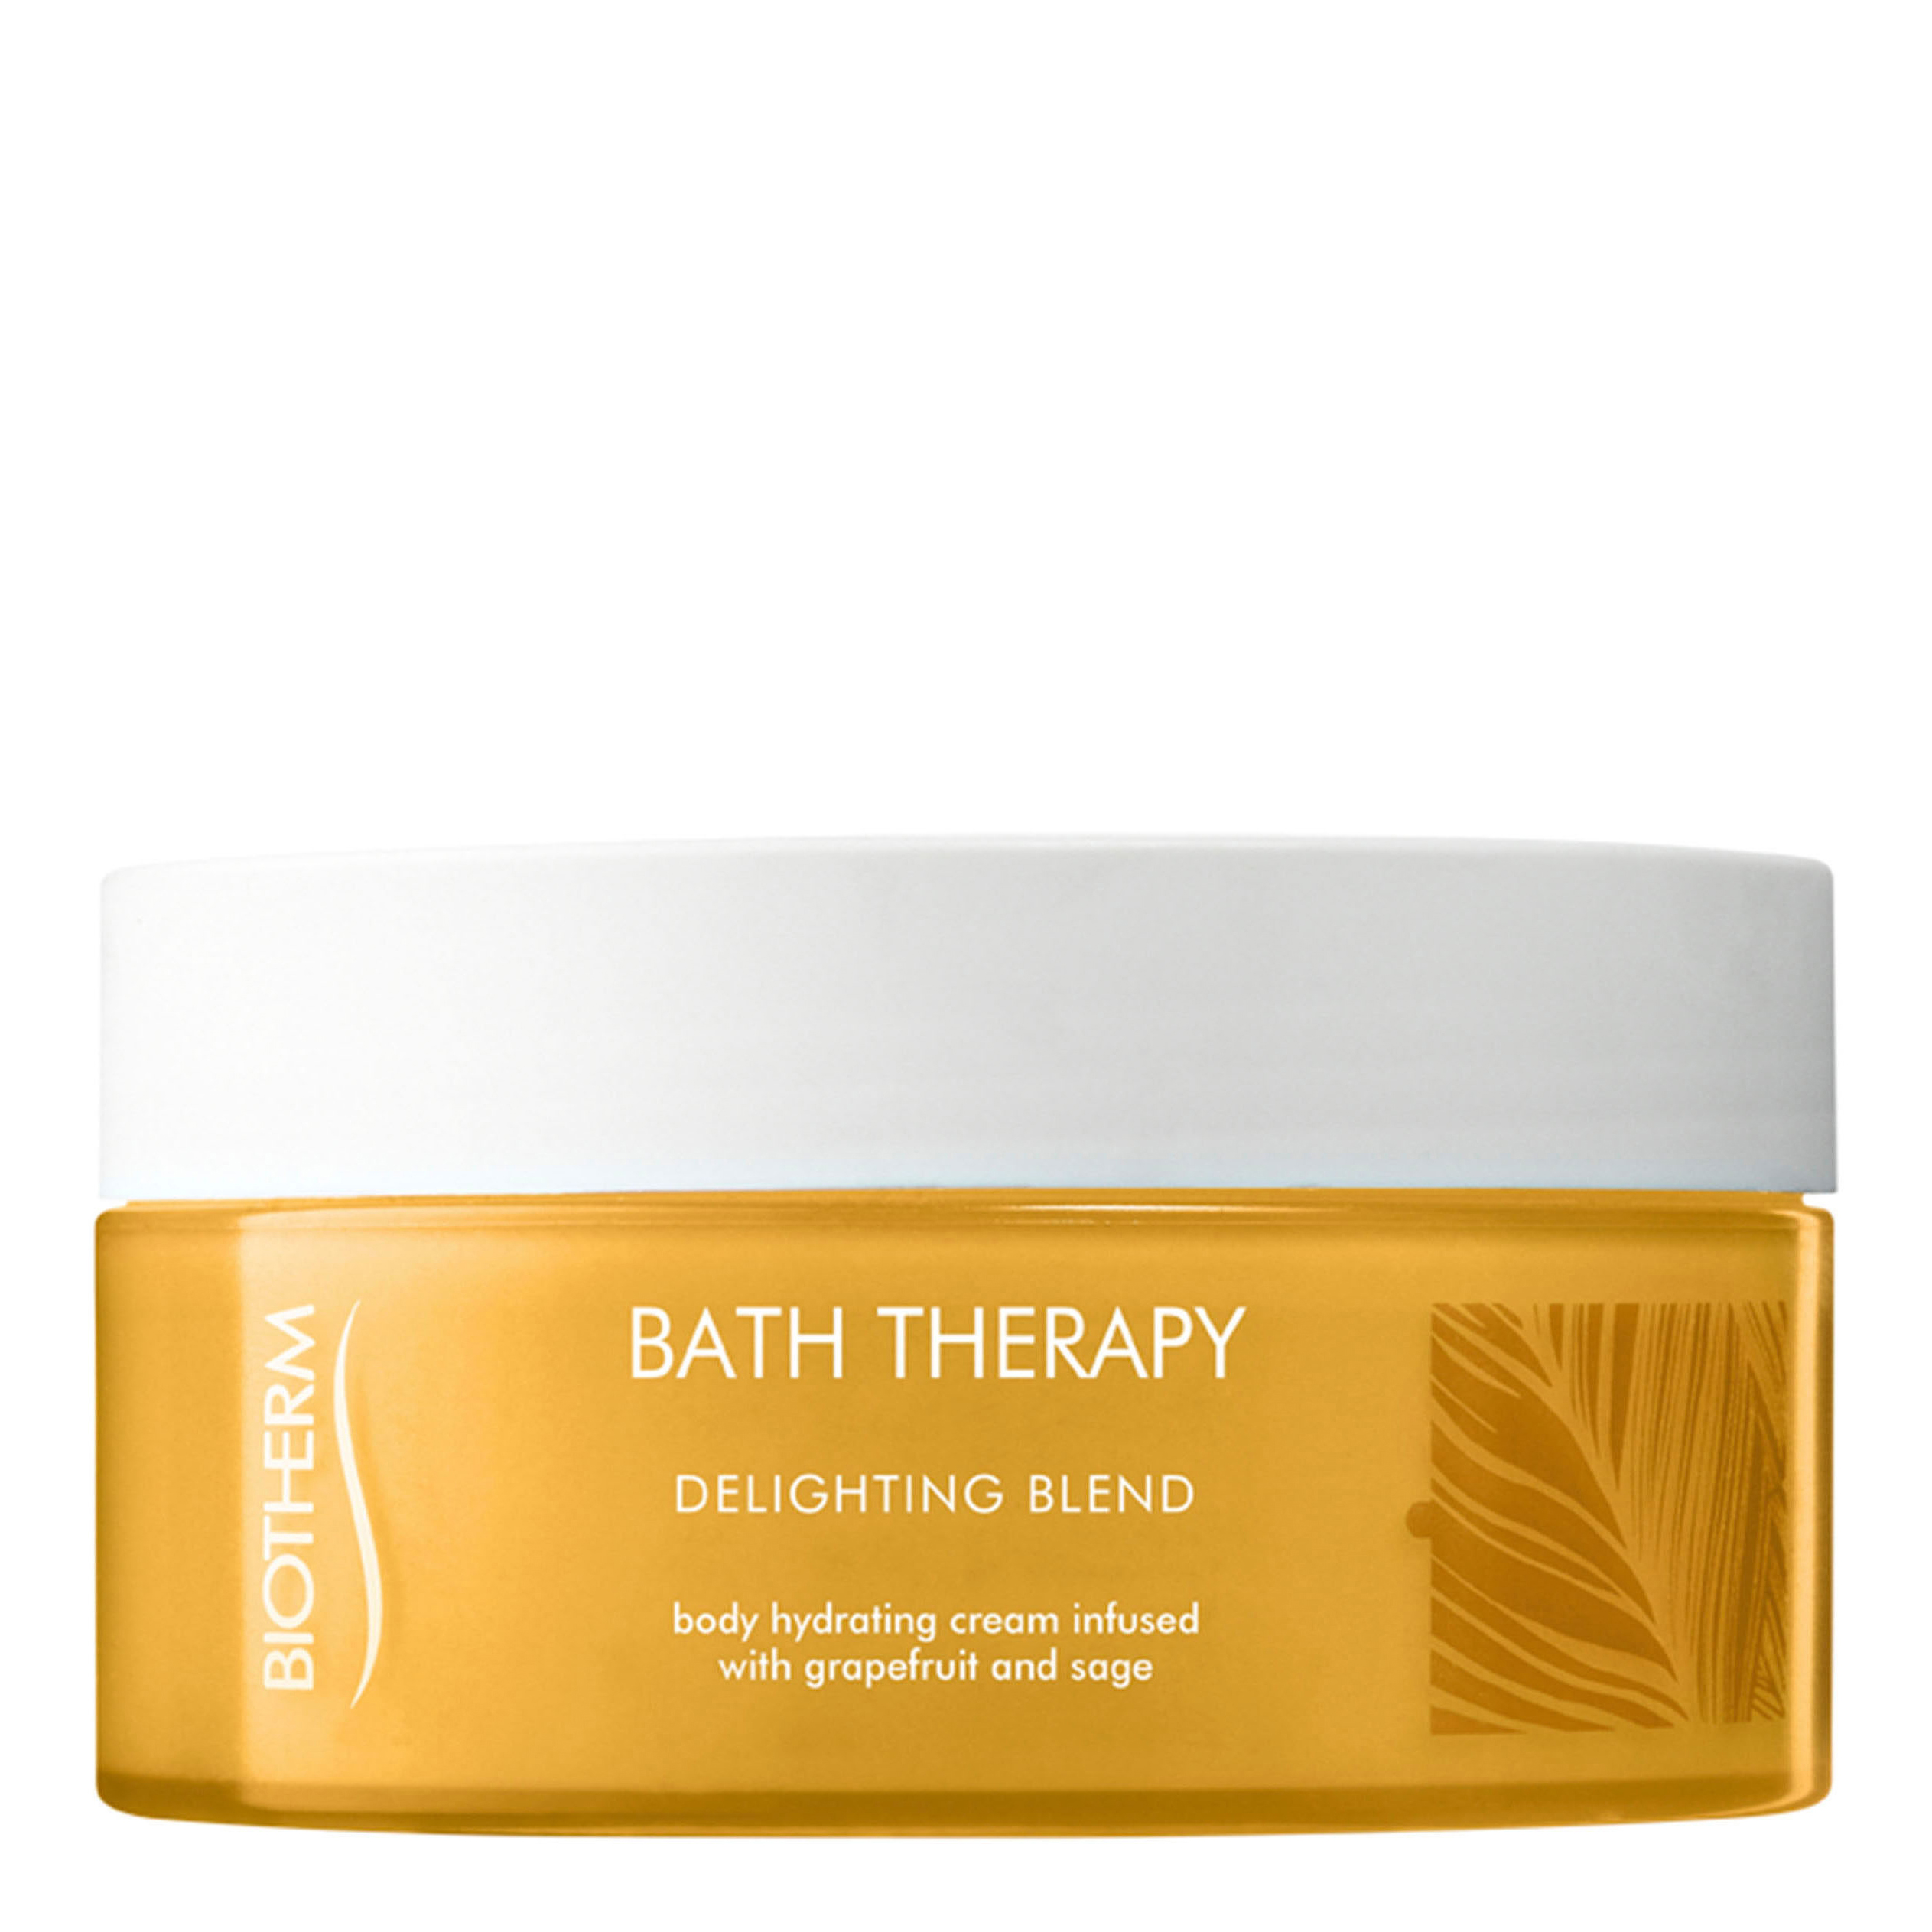 Bath Therapy. BIOTHERM Bath Therapy Delighting Blend Hydrating Cream 200ml